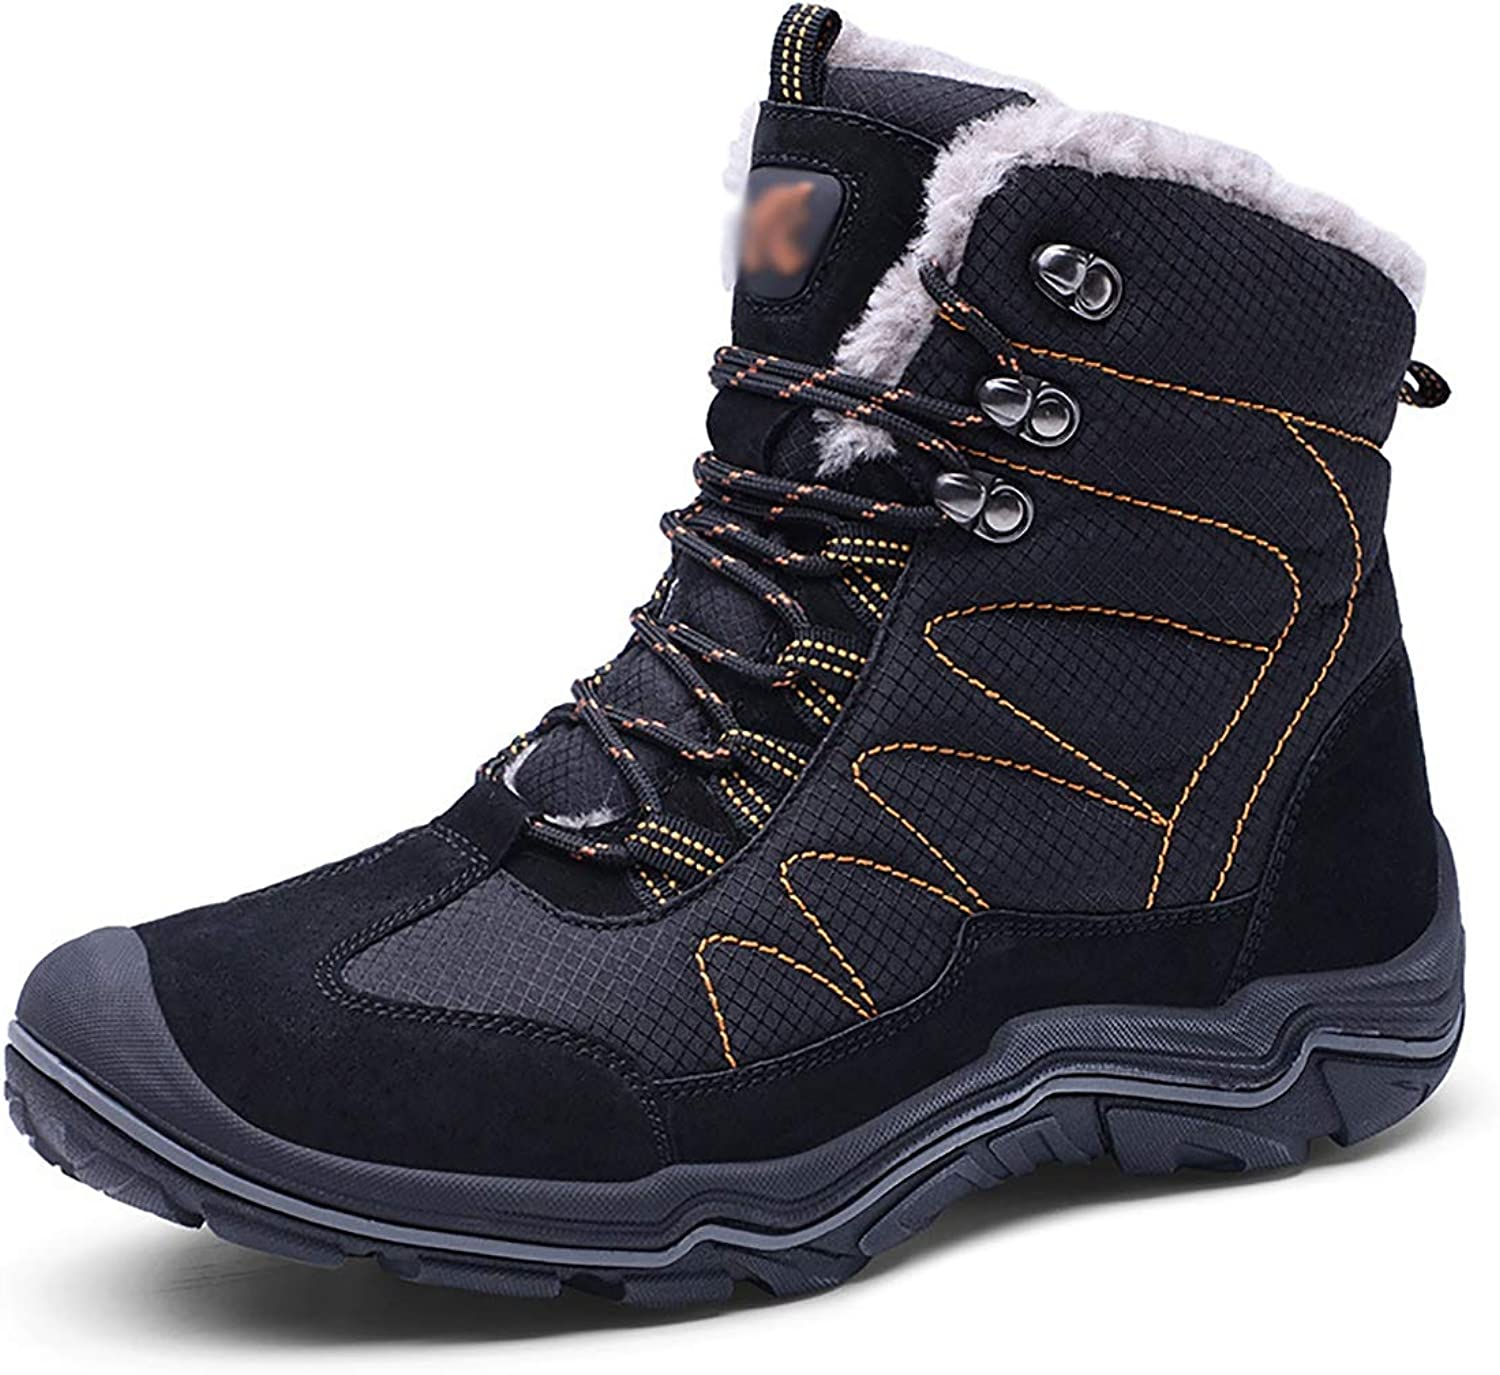 Snow Boots Winter Cotton shoes Men, high to Help Men Warm and Cotton Thick Casual Hiking shoes,Black,43